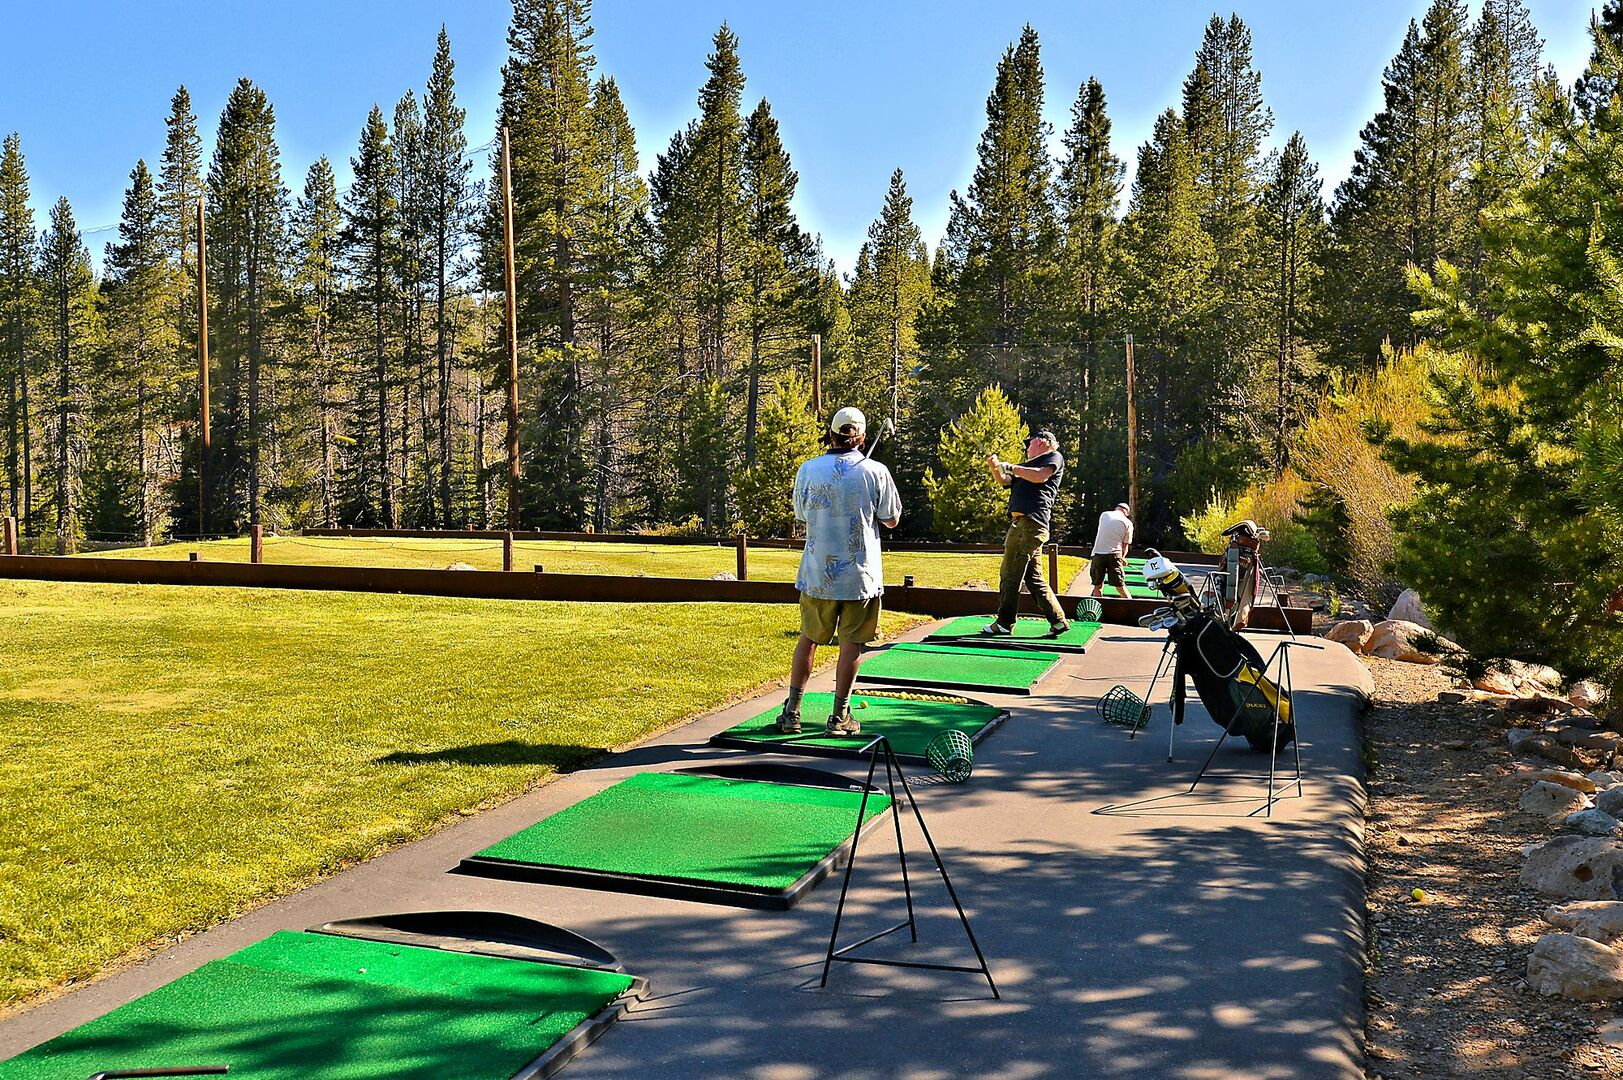 Driving Range at the Rec Center